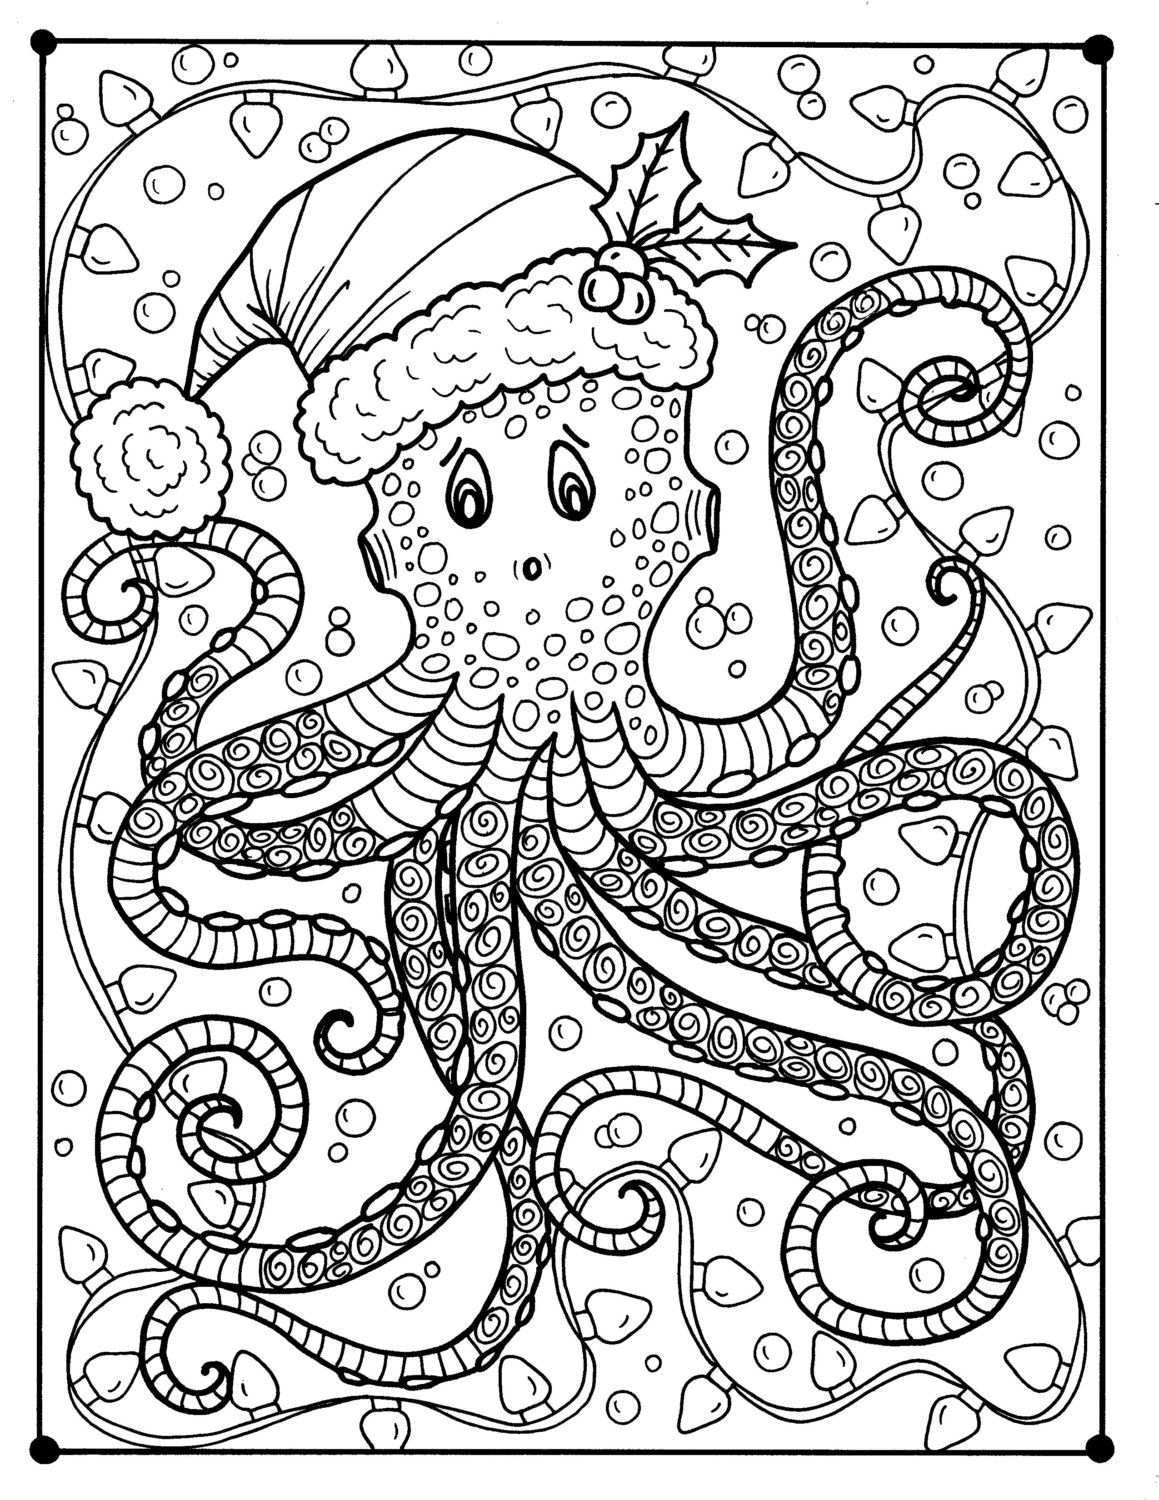 Octopus Christmas Coloring page Adult color Holidays beach | Dibus ...